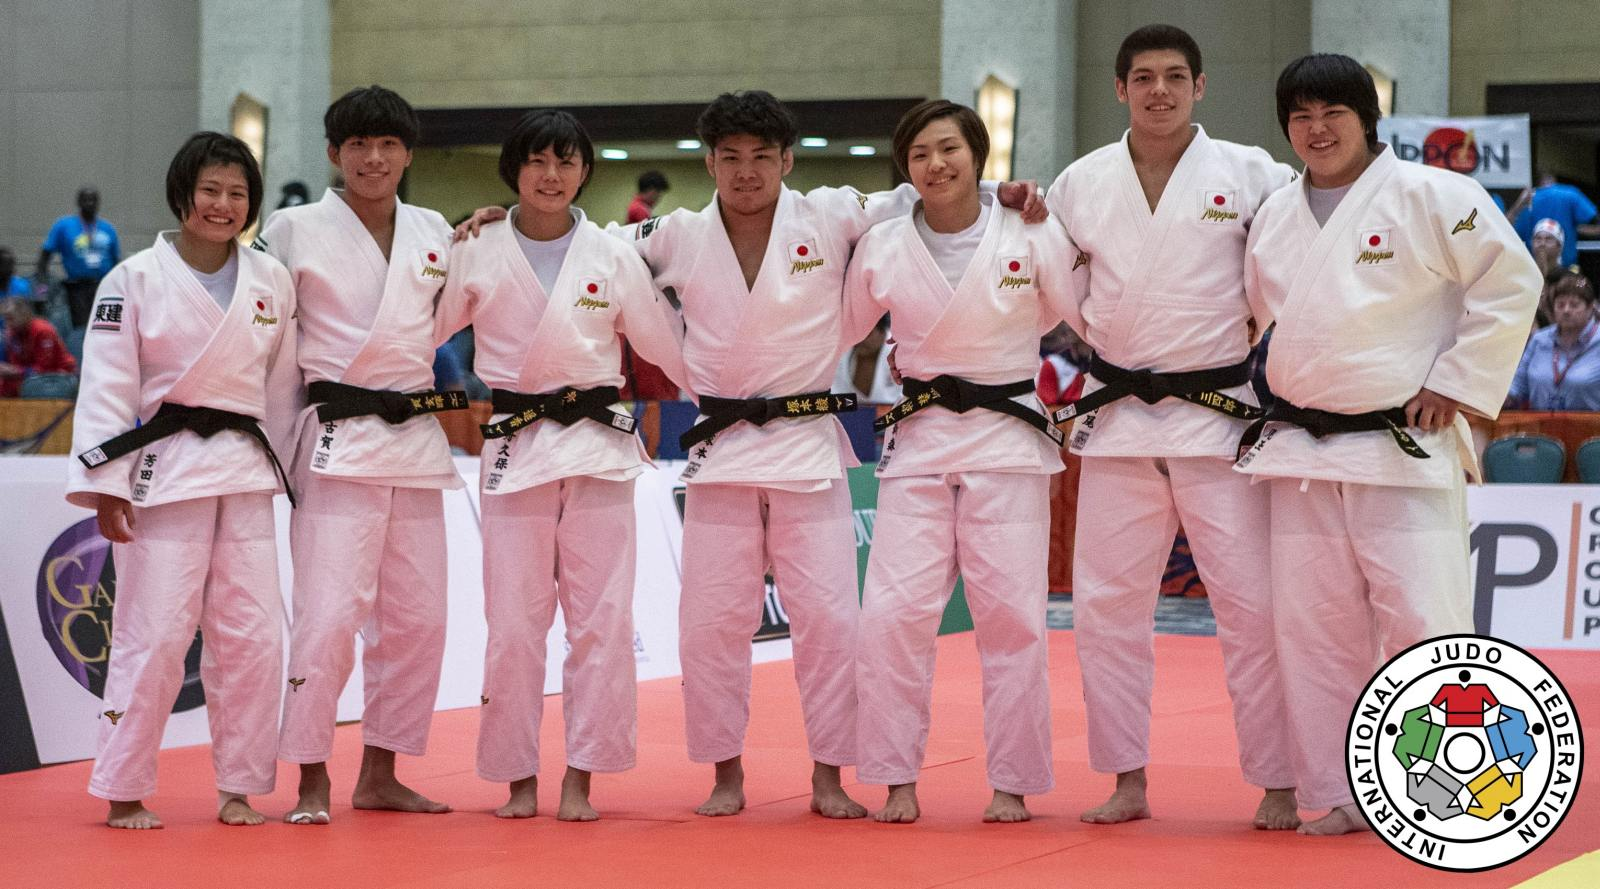 20181021_wch_jnr_nassau_teams_ijf_japan_b28q074015401648131540164813